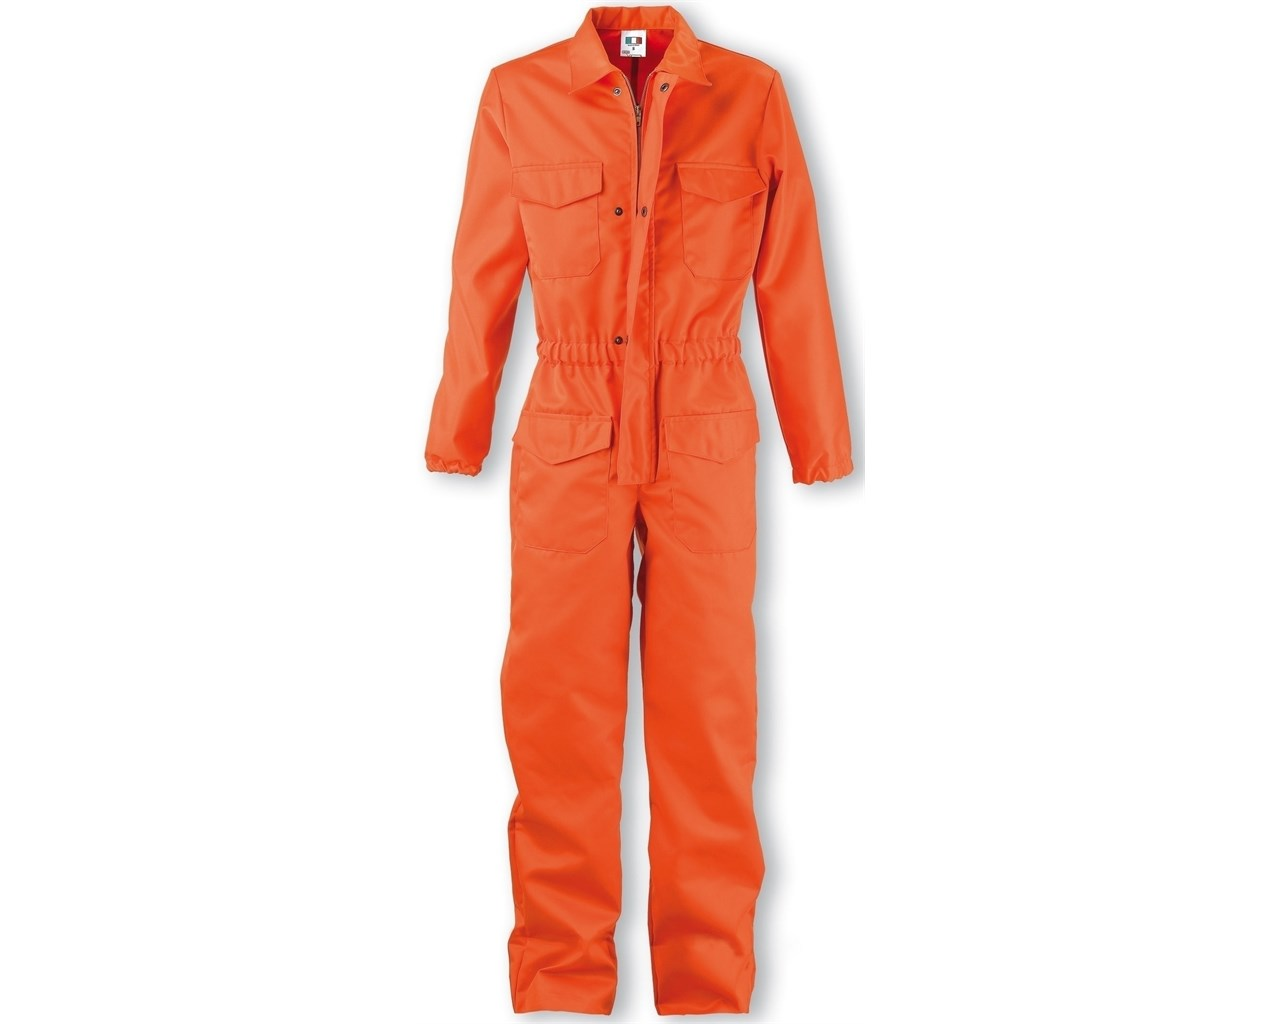 Accsafe Orange Nomex Fire Retardant Coverall NFR-C